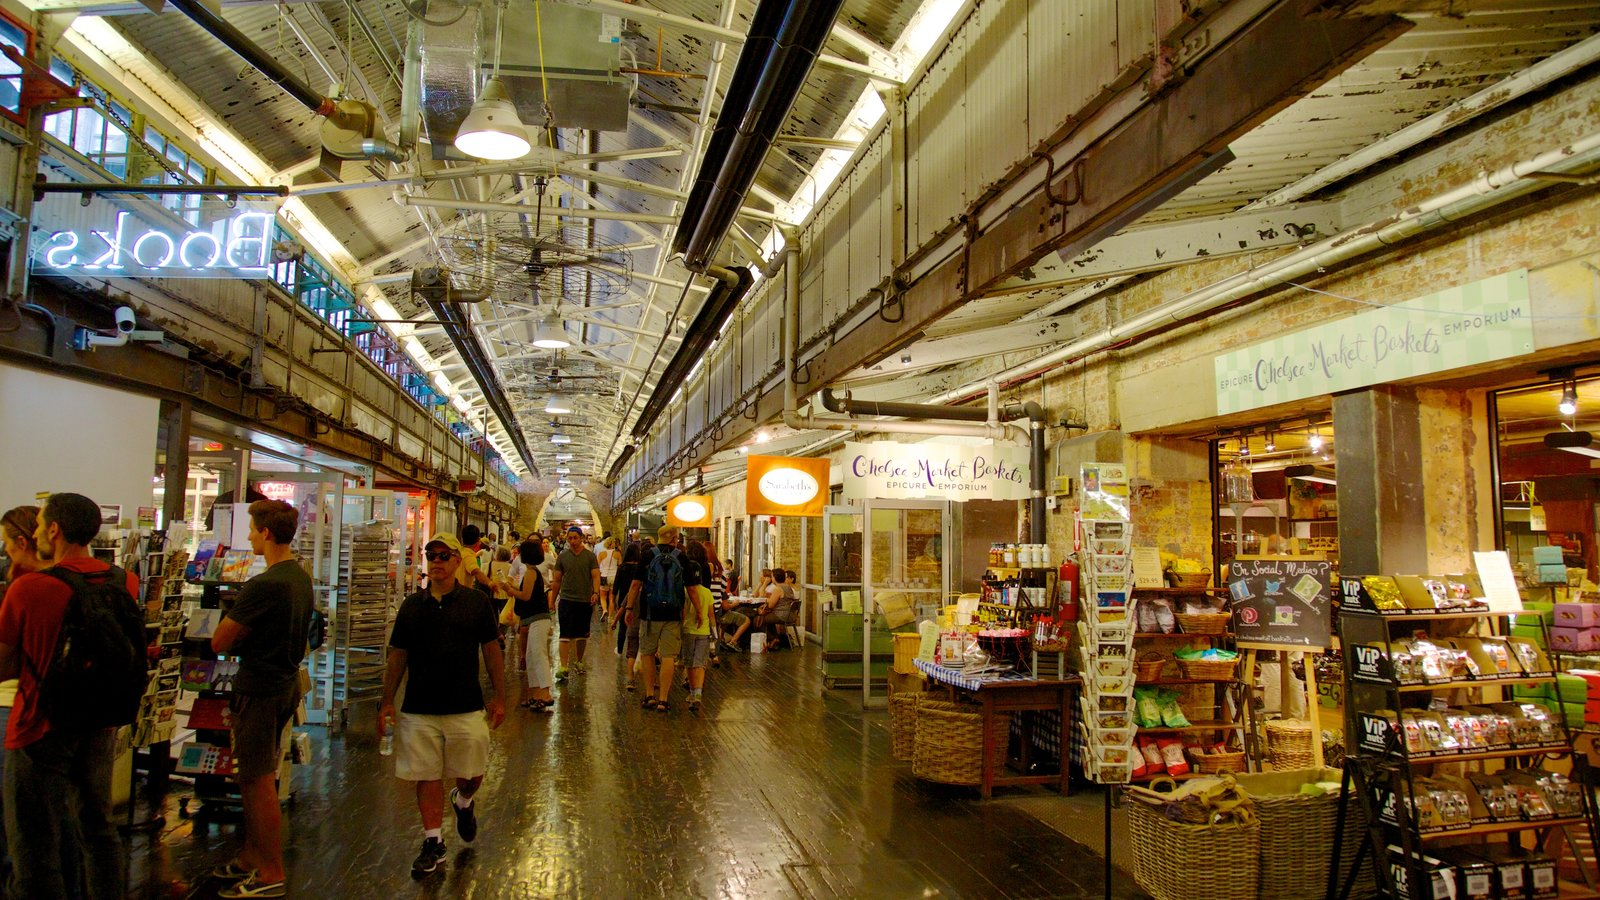 Well-liked Chelsea Market Pictures: View Photos & Images of Chelsea Market WL83